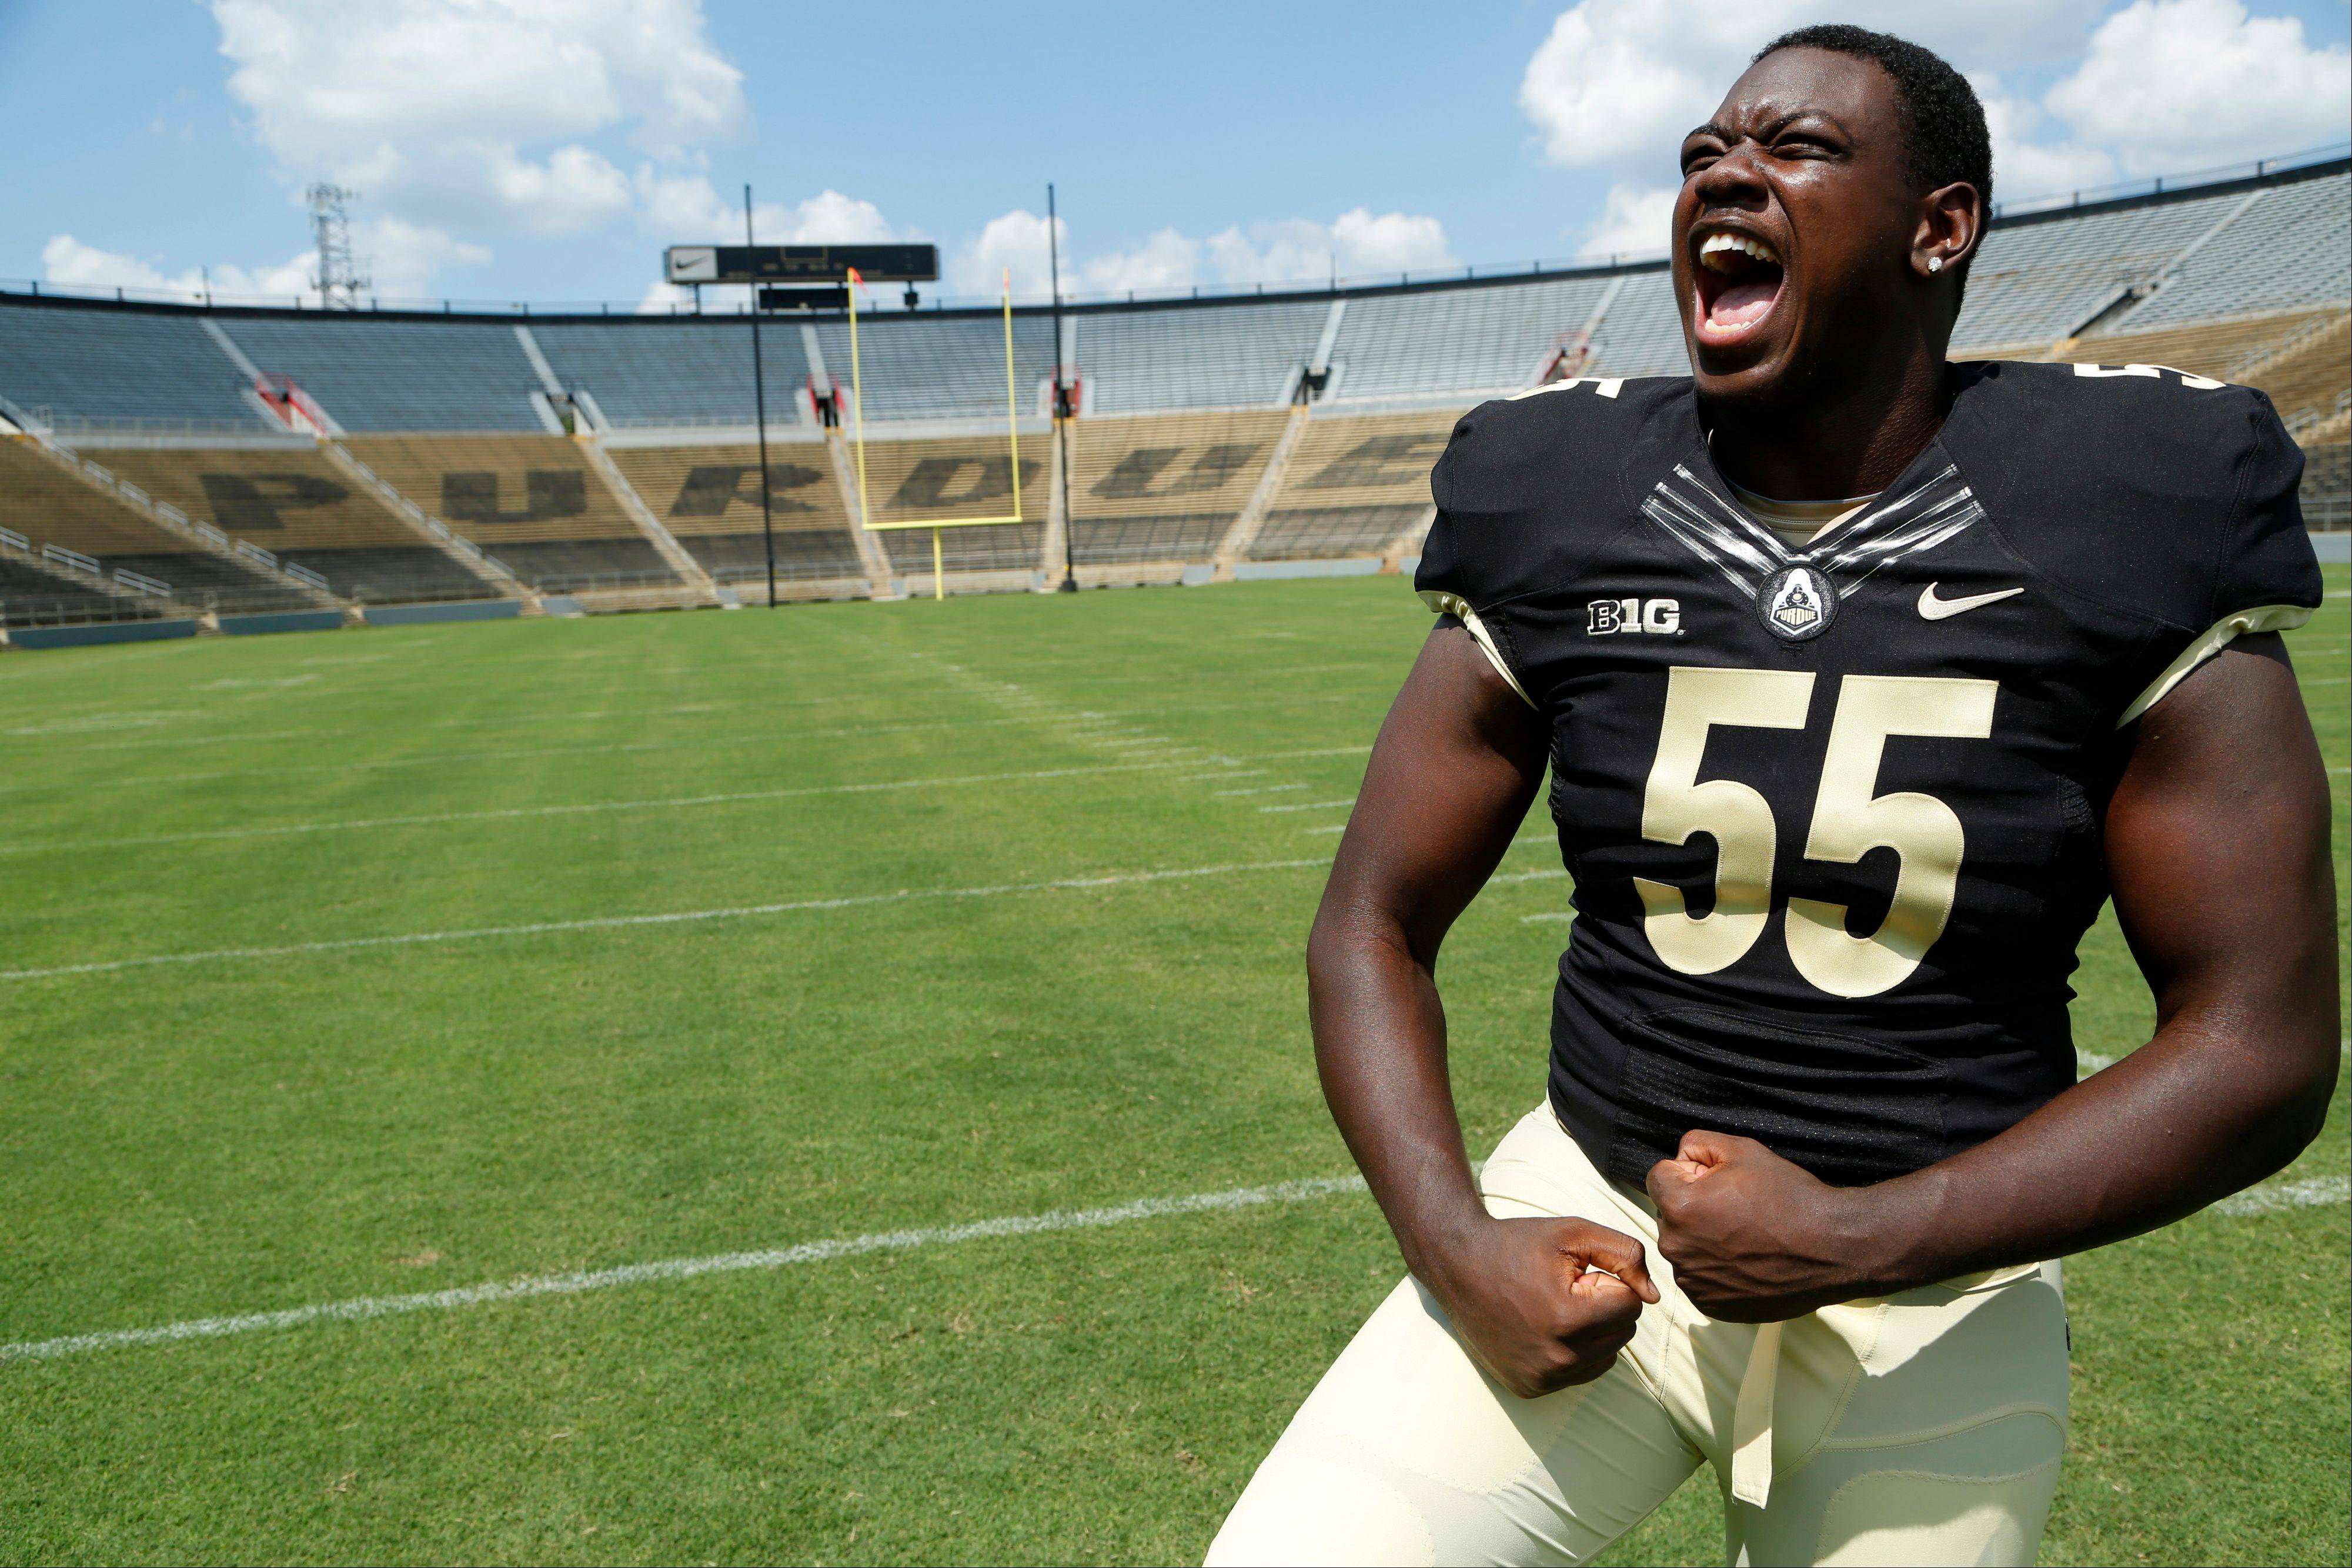 Purdue's Antoine Miles strikes a pose during media day on Sunday at Ross-Ade Stadium in West Lafayette, Ind.